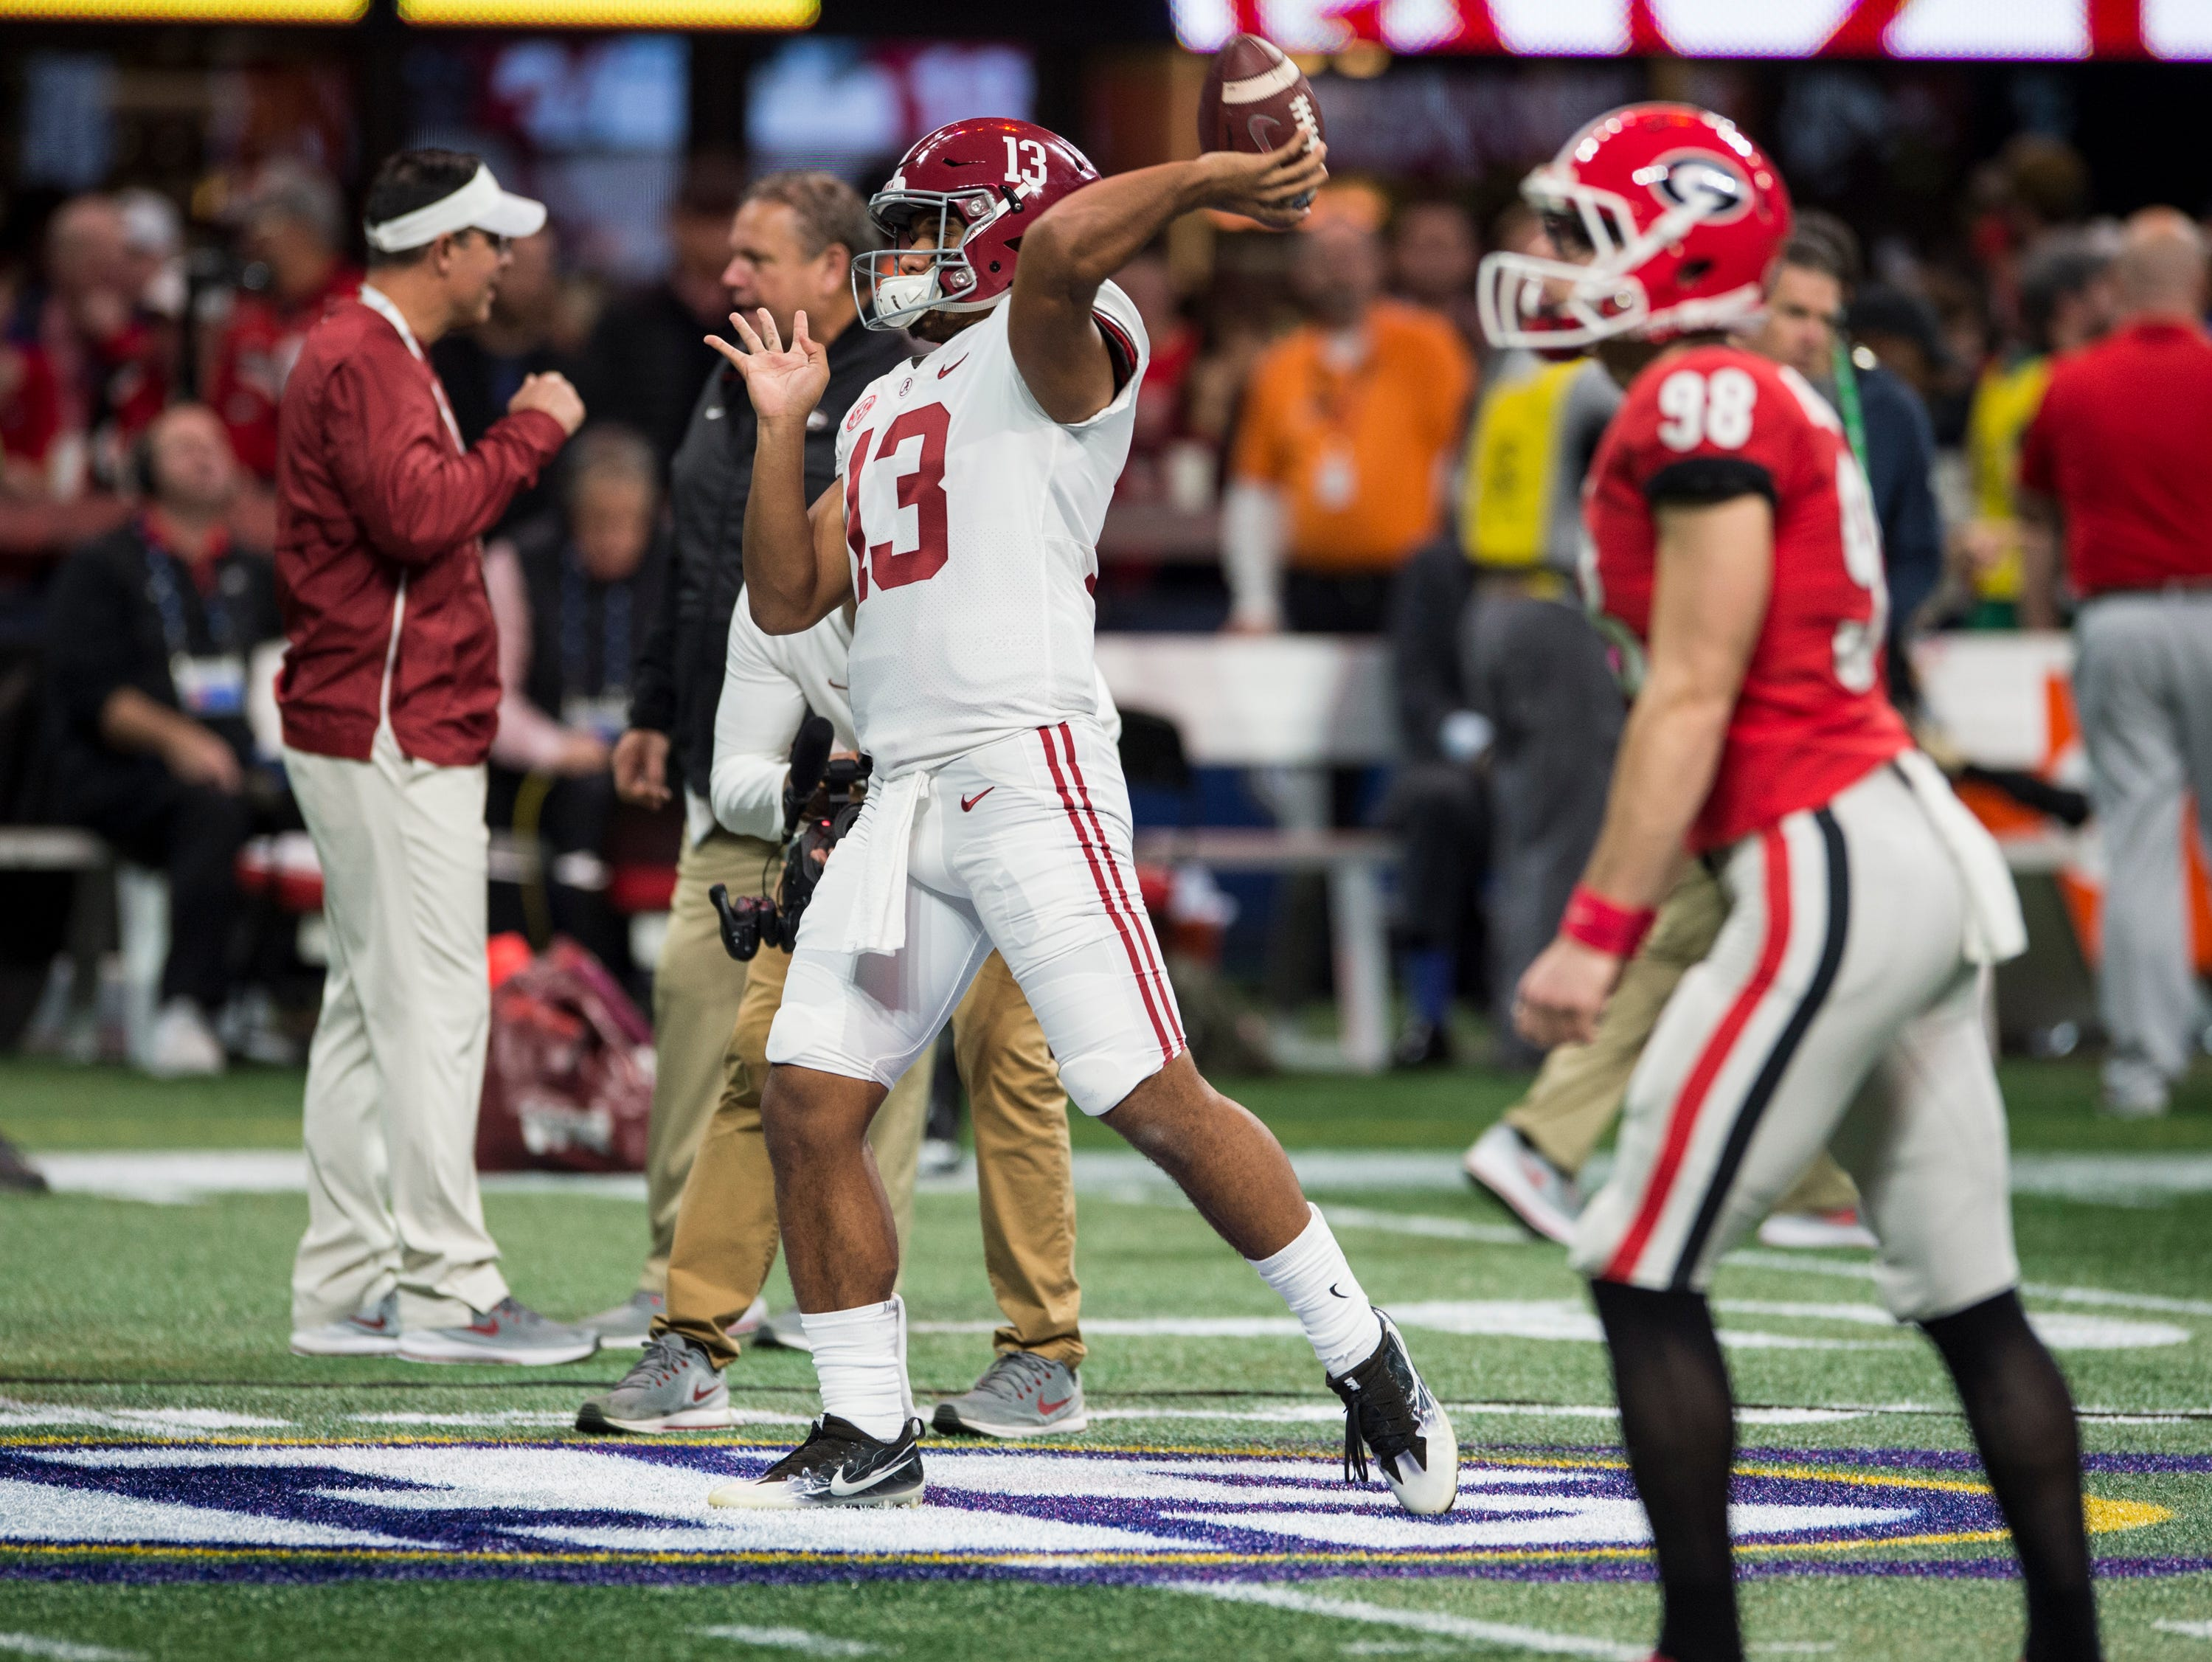 Alabama quarterback Tua Tagovailoa (13) and Georgia kicker Rodrigo Blankenship (98) warm up before the SEC Championship game at Mercedes-Benz Stadium in Atlanta, Ga., on Saturday Dec. 1, 2018.